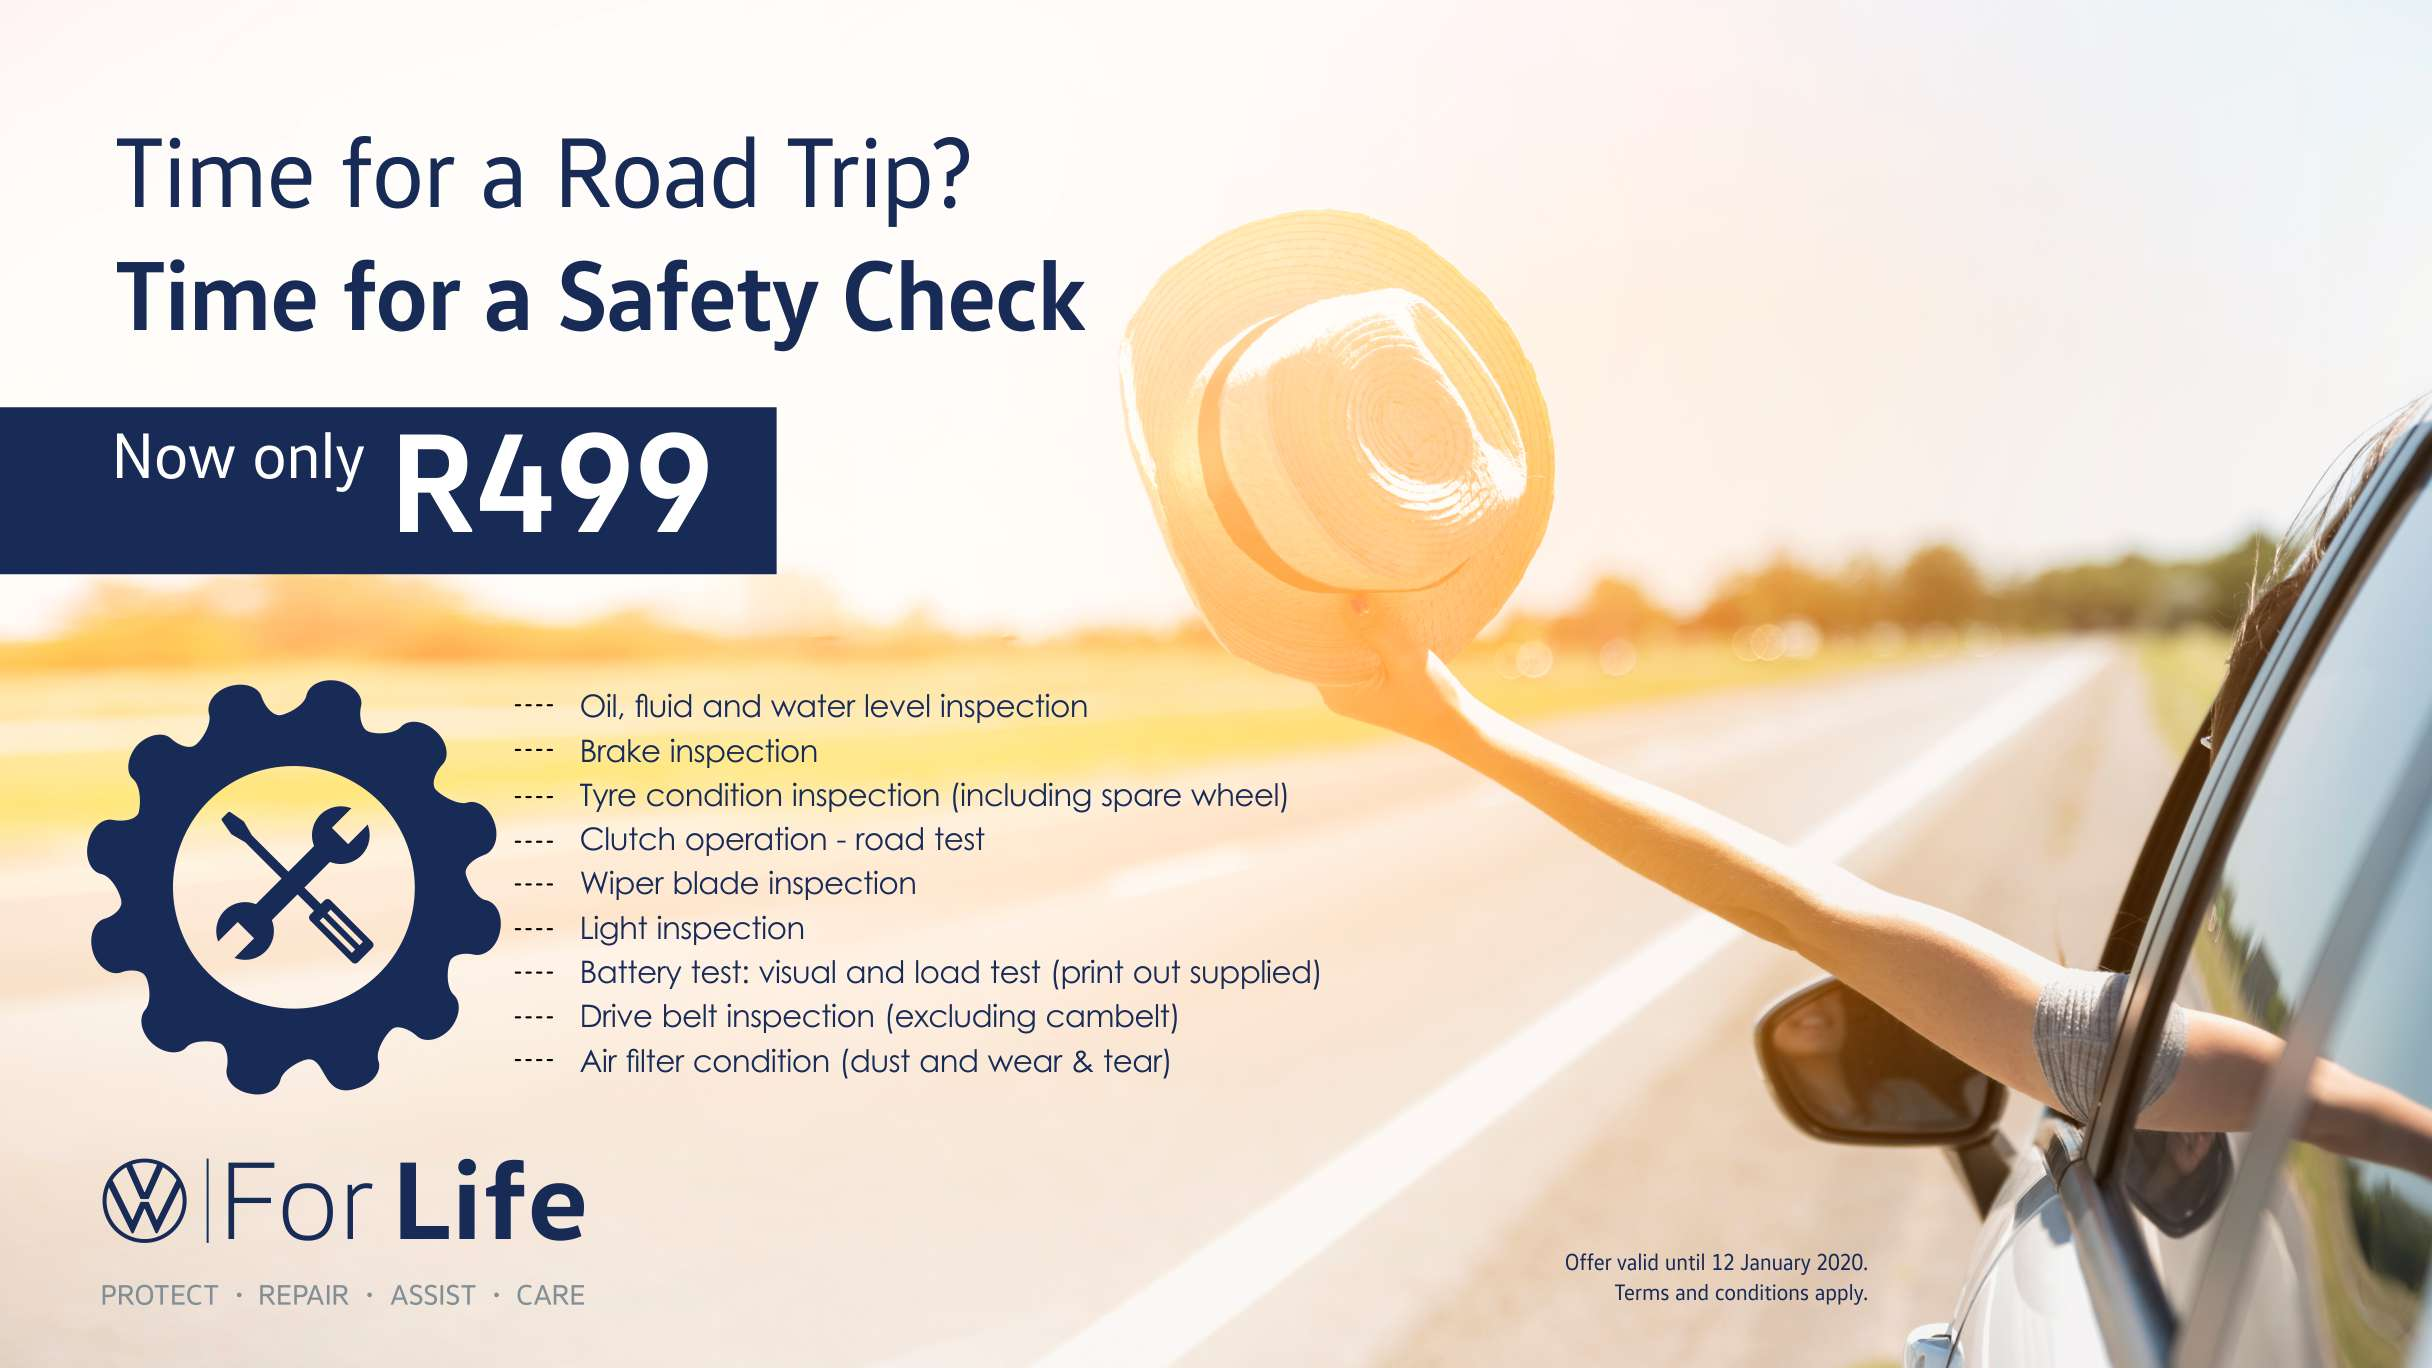 Barons Tokai Holiday safety check service offer